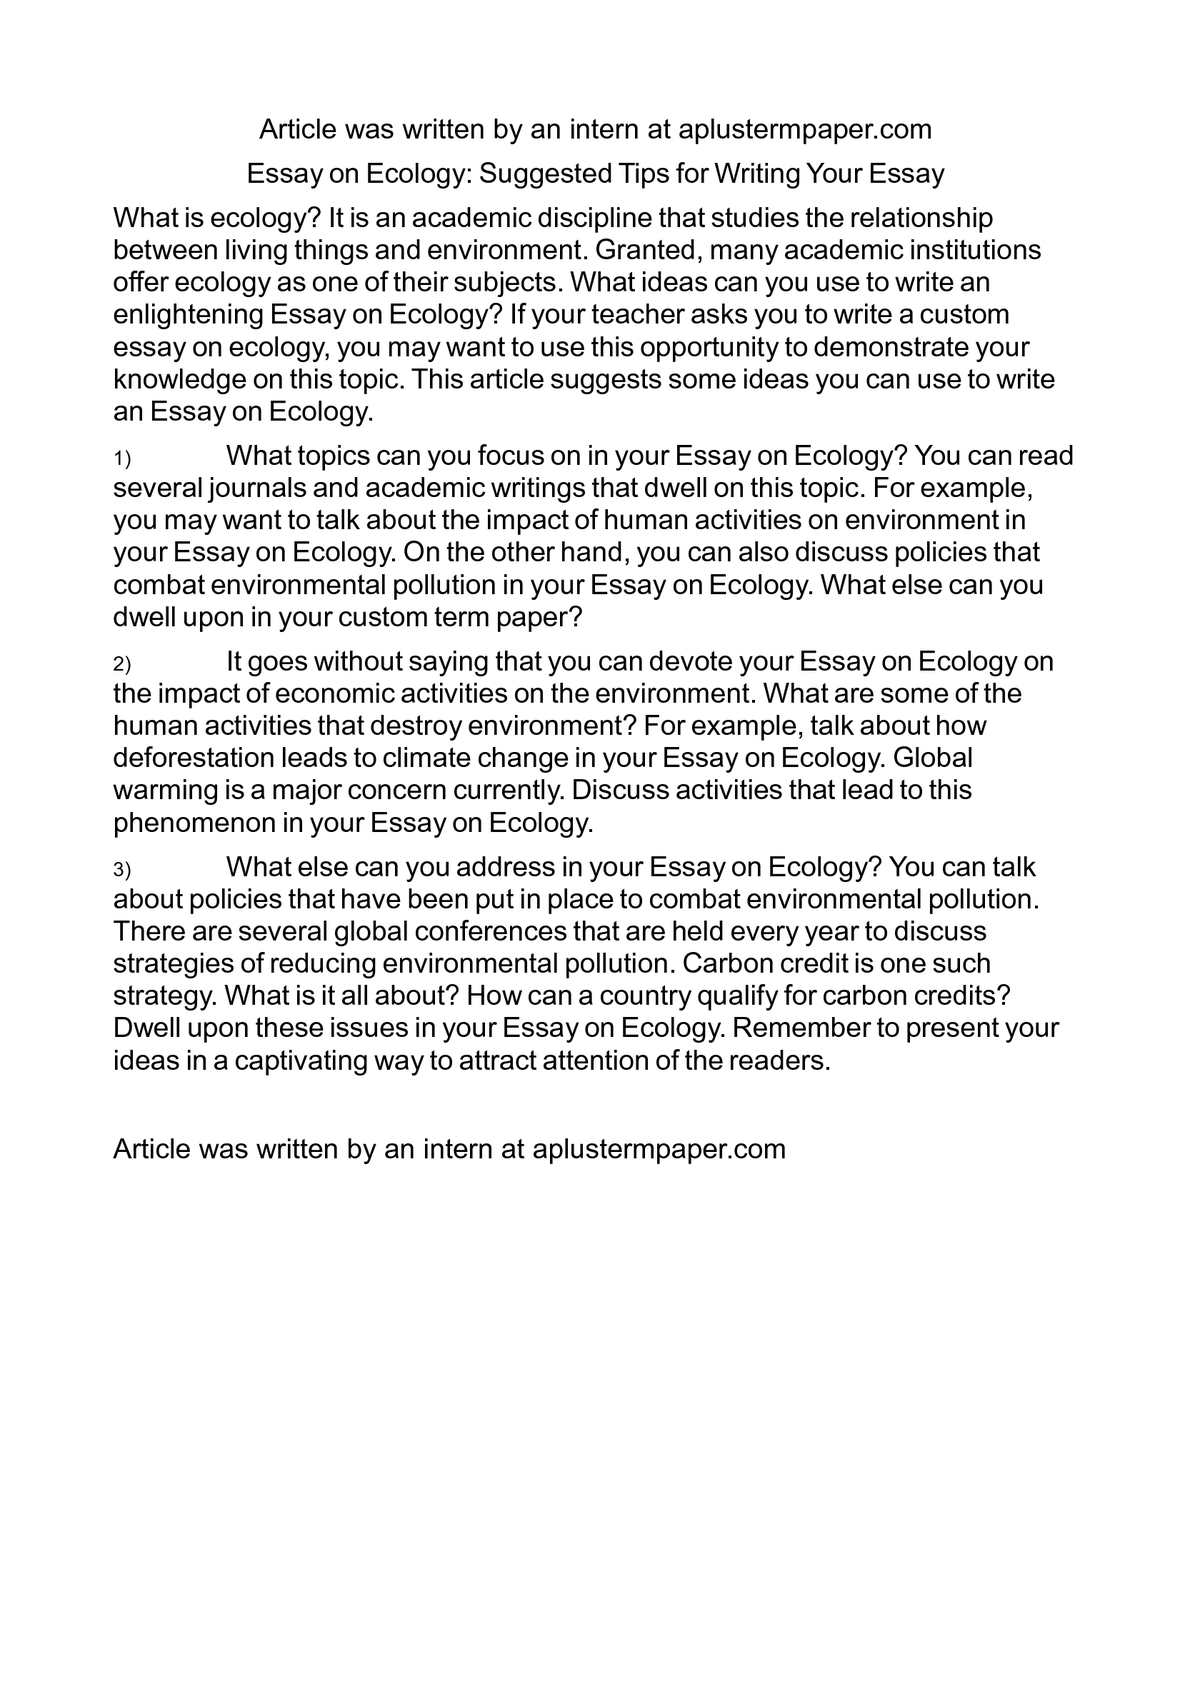 Calamo  Essay On Ecology Suggested Tips For Writing Your Essay